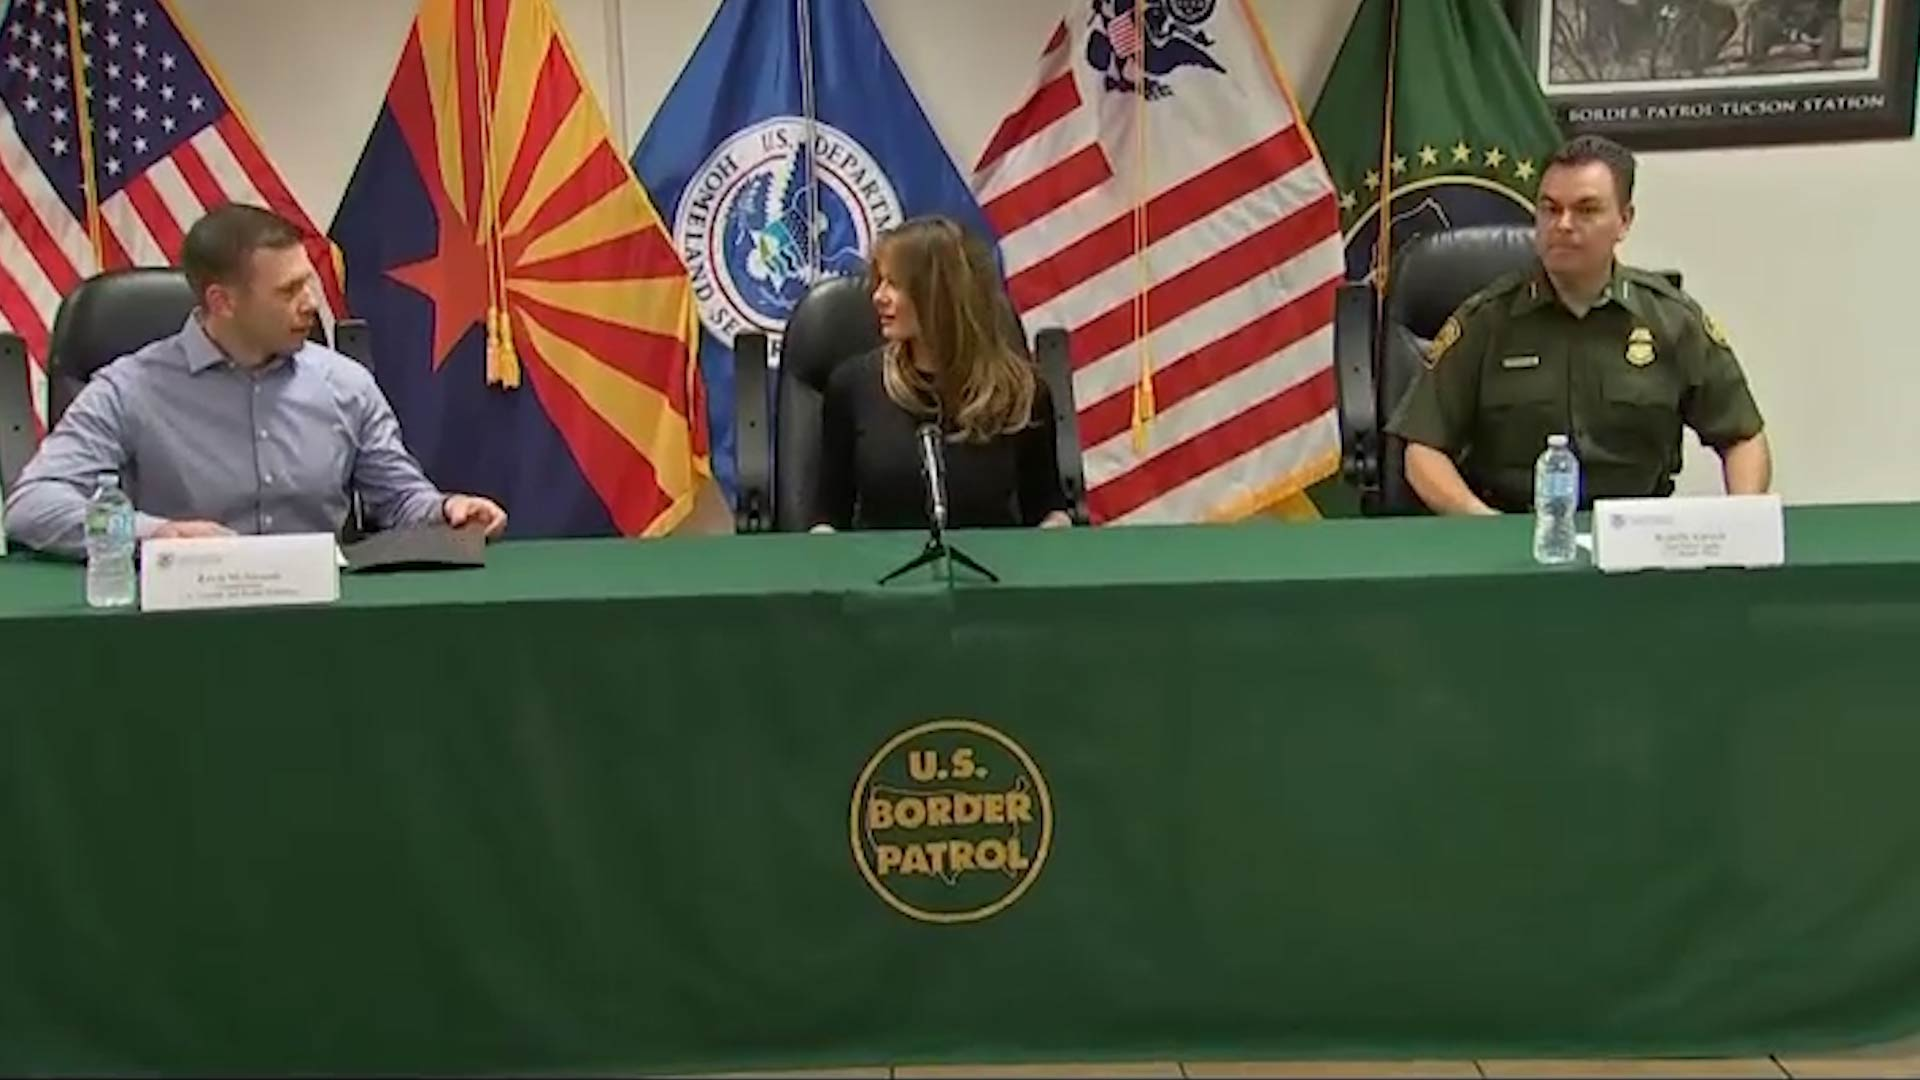 First lady Melania Trump sits between Customs and Border Protection Commissioner Kevin McAleenan, left, and Tucson Sector Border Patrol Chief Rodolfo Karisch at a meeting during her visit to Tucson on June 28, 2018.